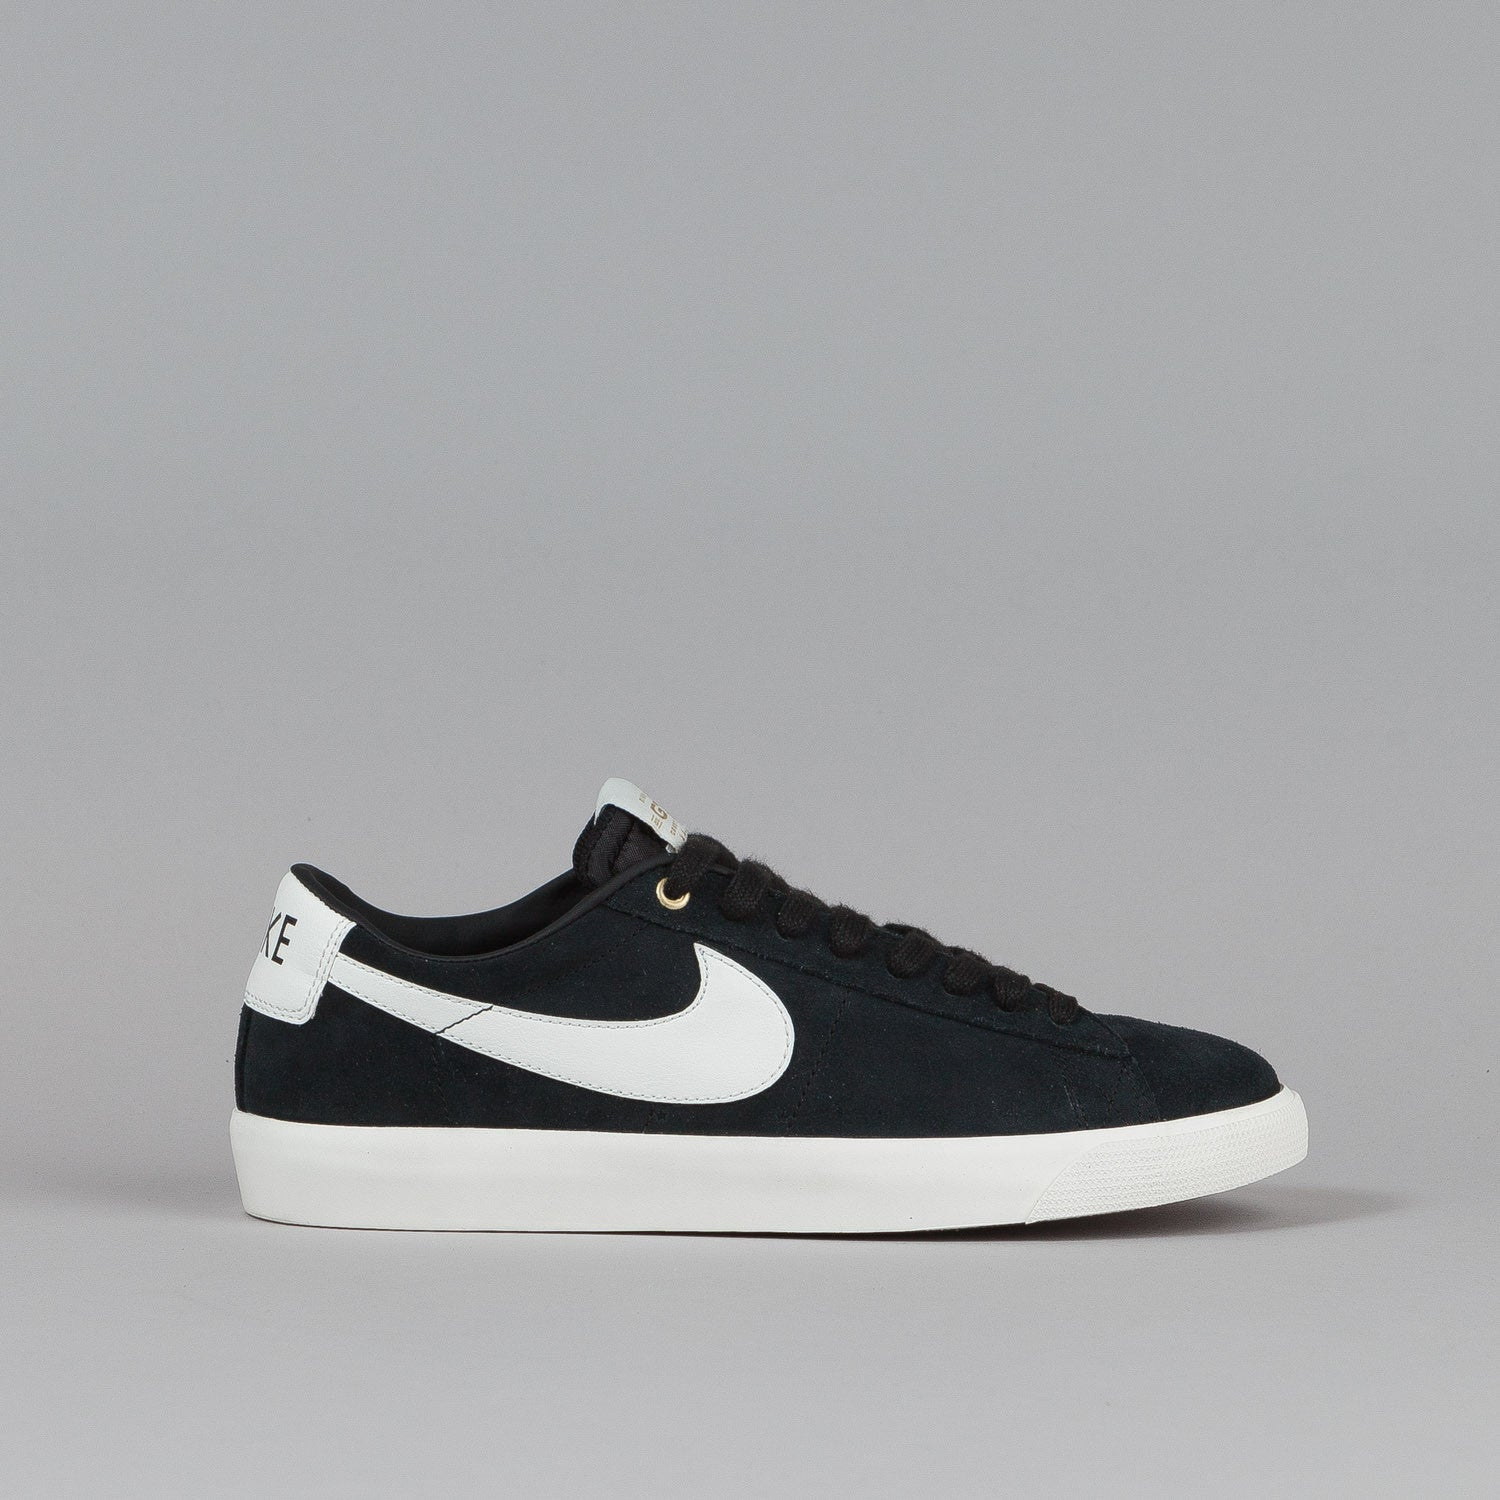 nike sb blazer low gt shoes black flatspot. Black Bedroom Furniture Sets. Home Design Ideas